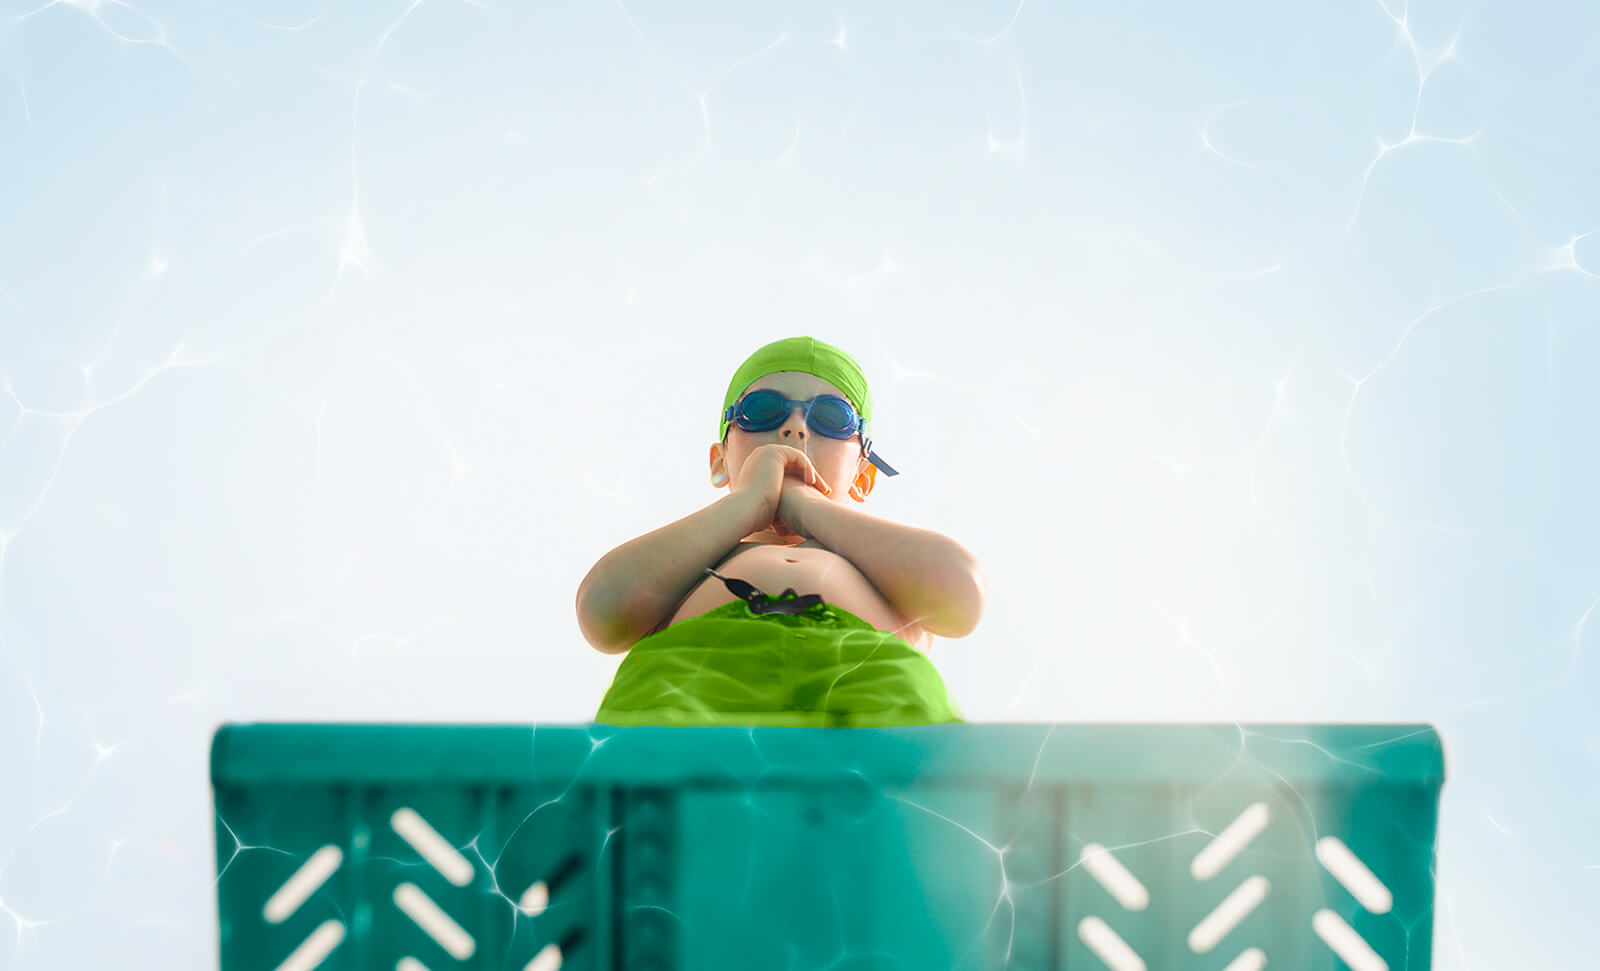 Underwater view of boy anxiously standing at the edge of a diving board while looking down at the water.